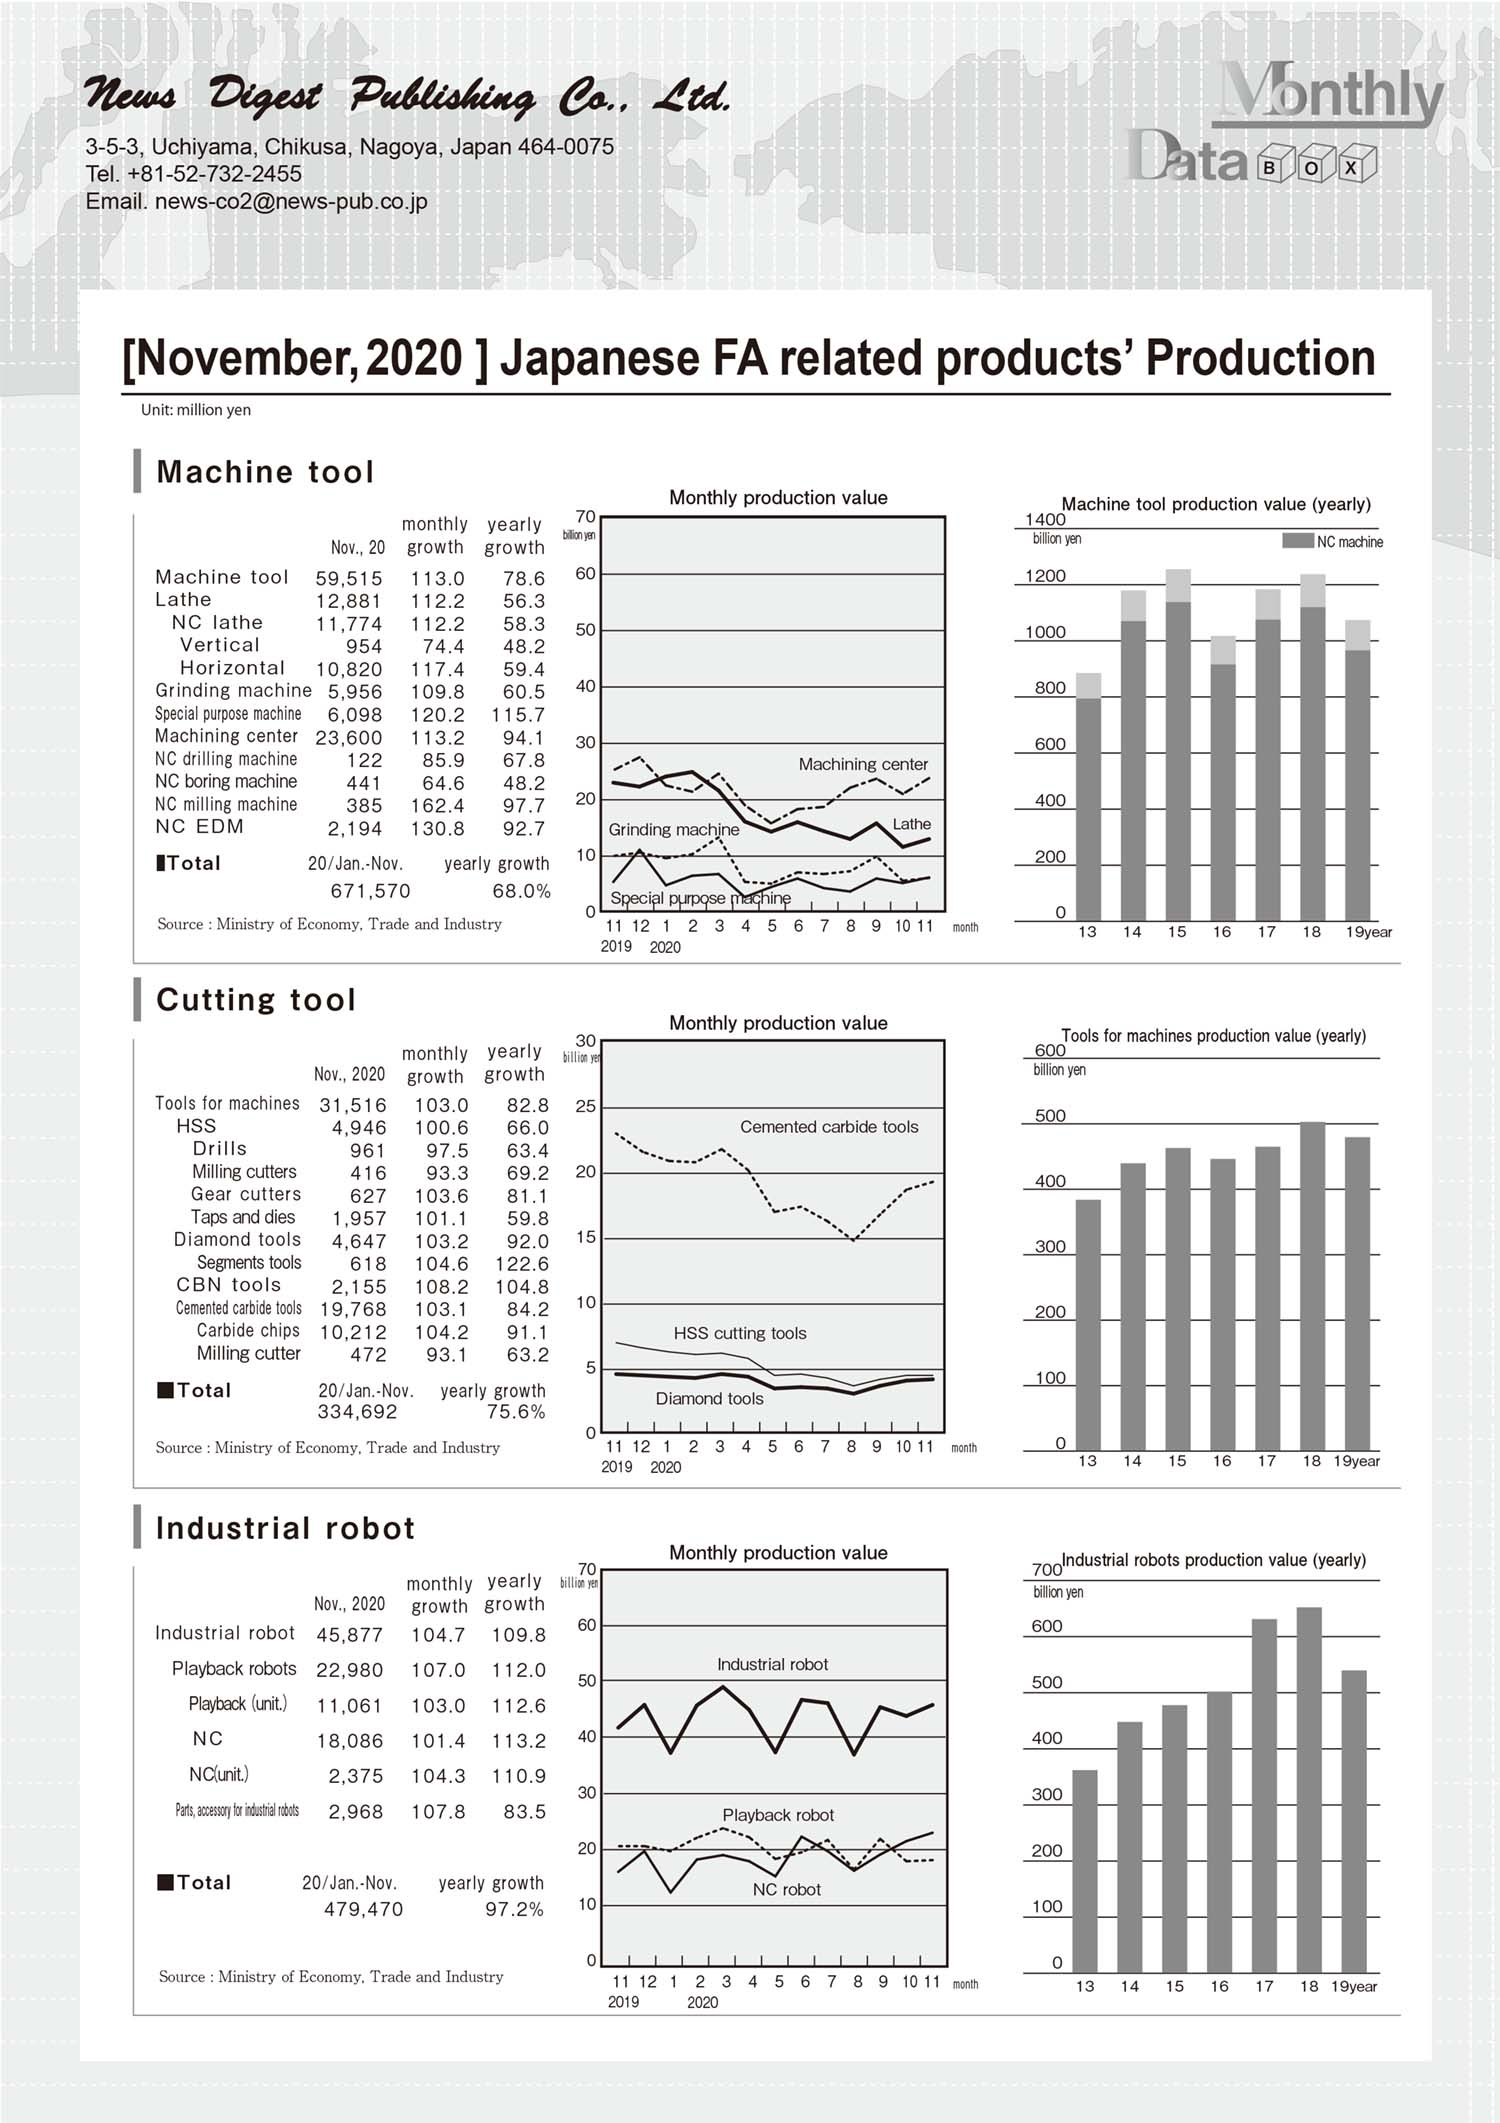 [November, 2020 ] Japanese FA related products' Production